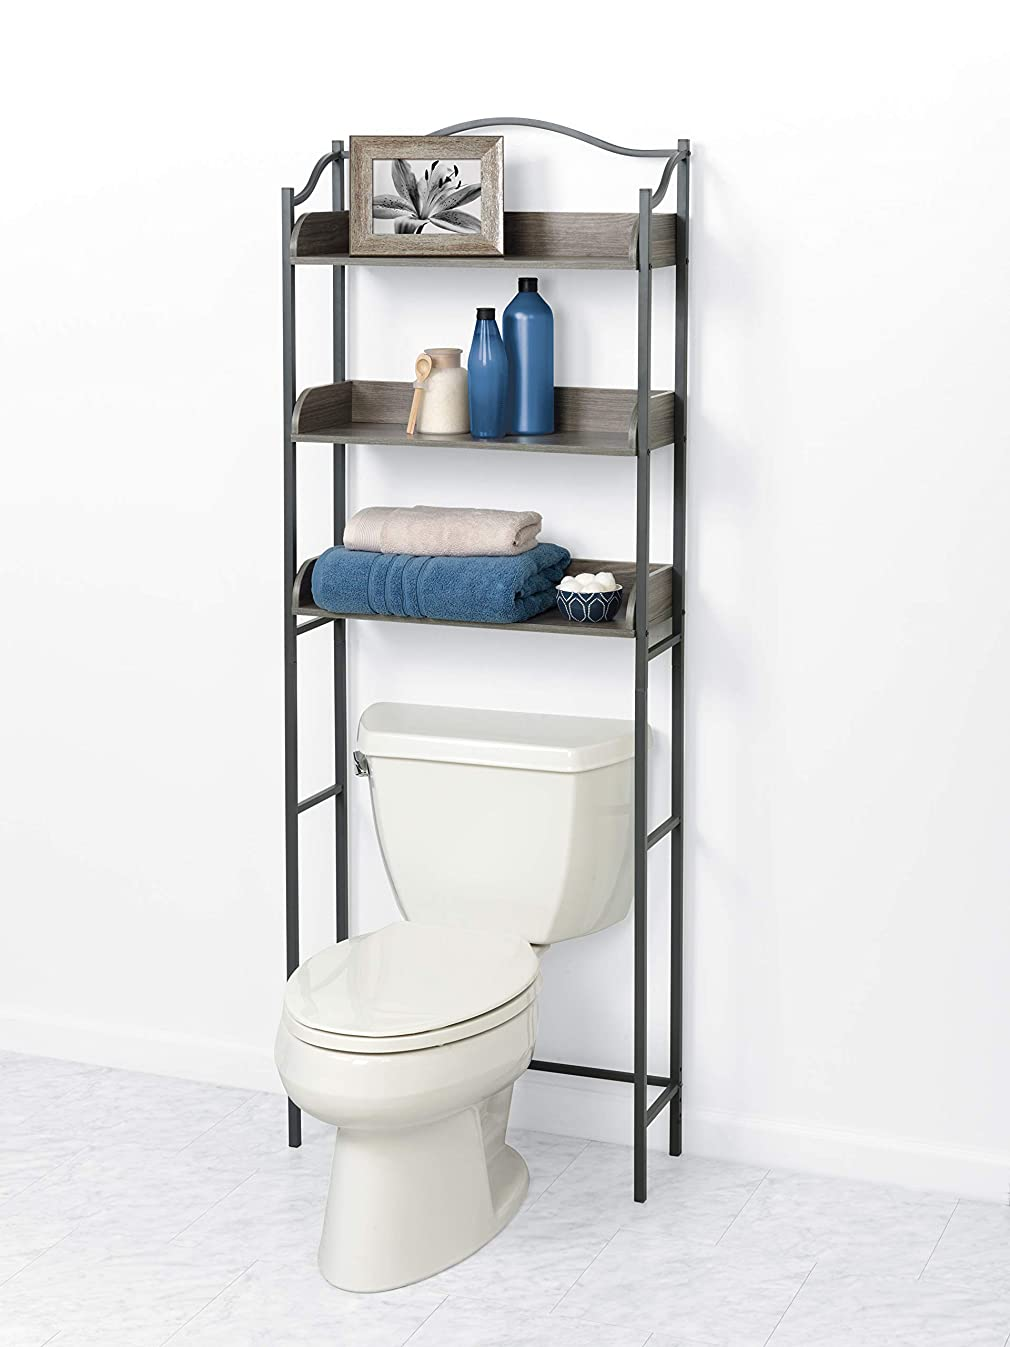 Zenna Home 3-Tier Over-The-Toilet Bathroom Spacesaver, Driftwood Gray/Pewter